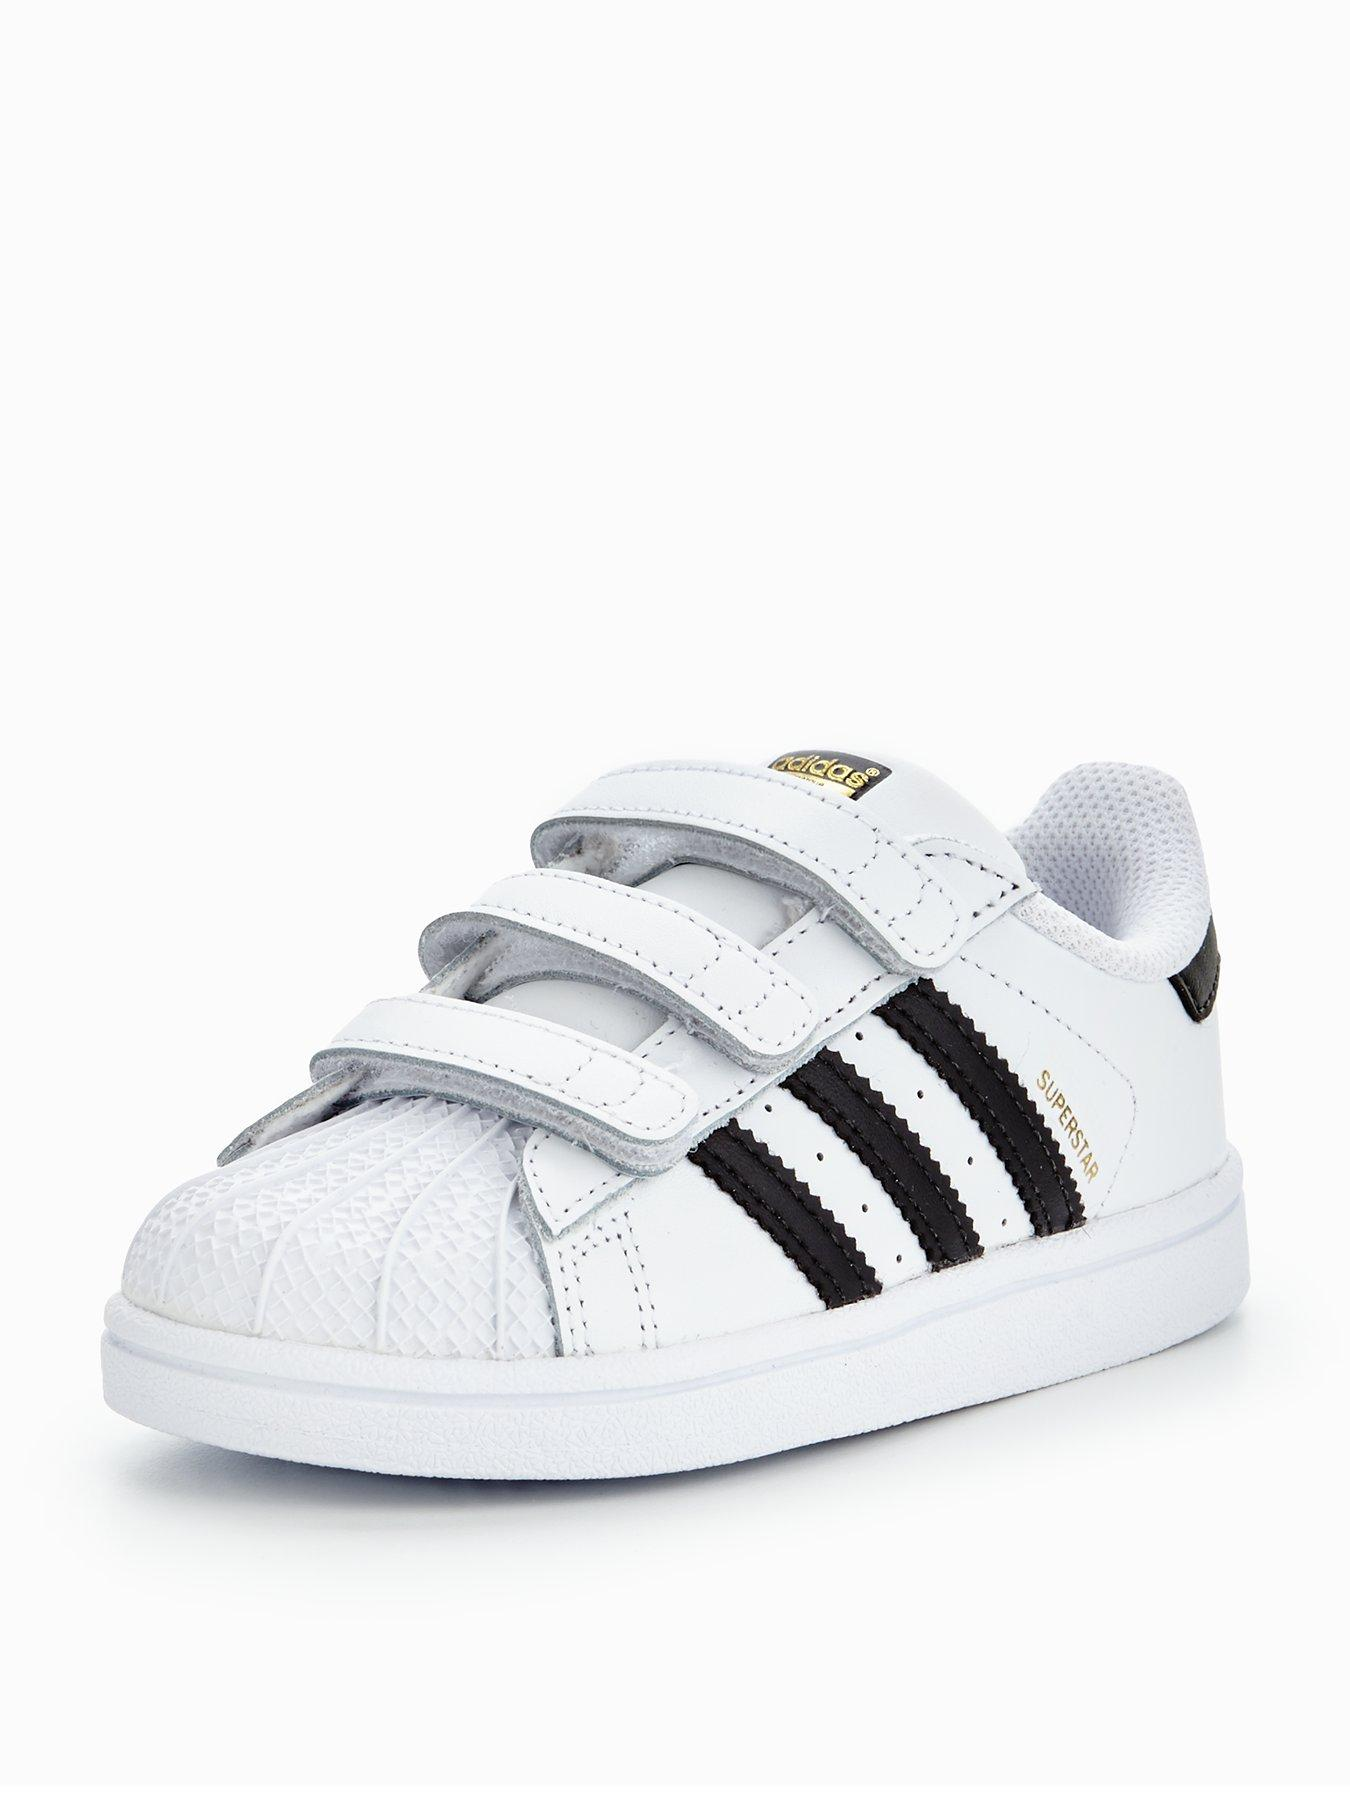 childs adidas trainers